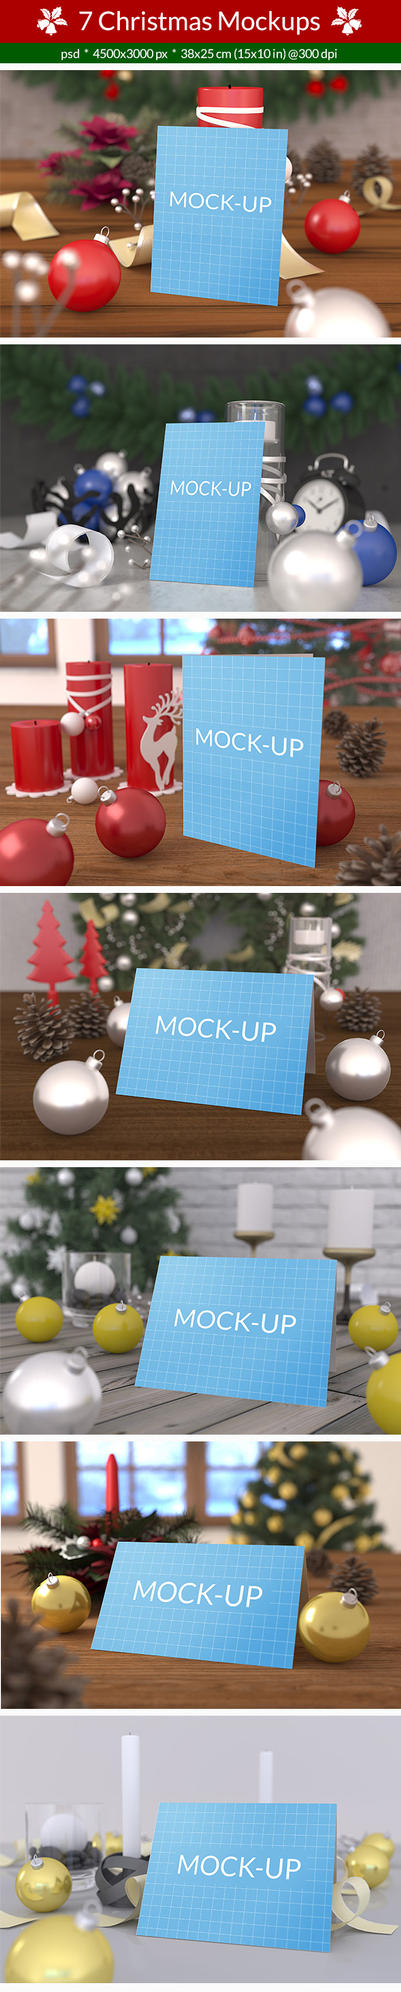 7 Christmas Card Mockups by C-3PO-upg